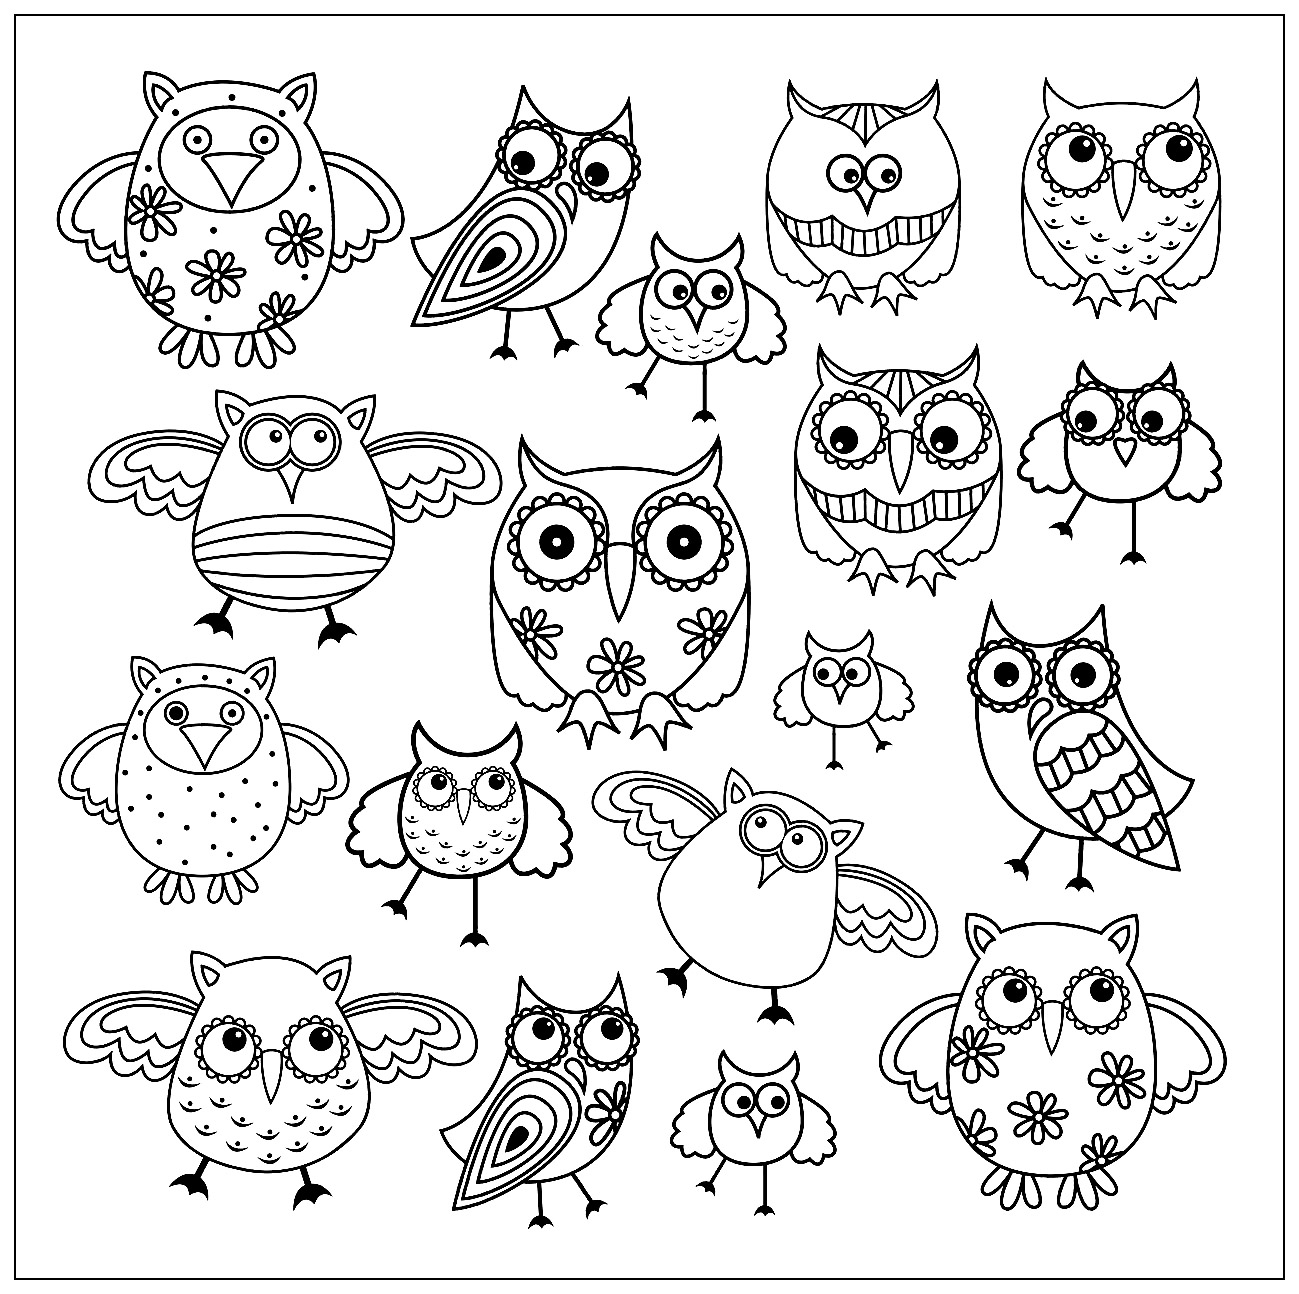 Doodle owls 2 Owls Adult Coloring Pages